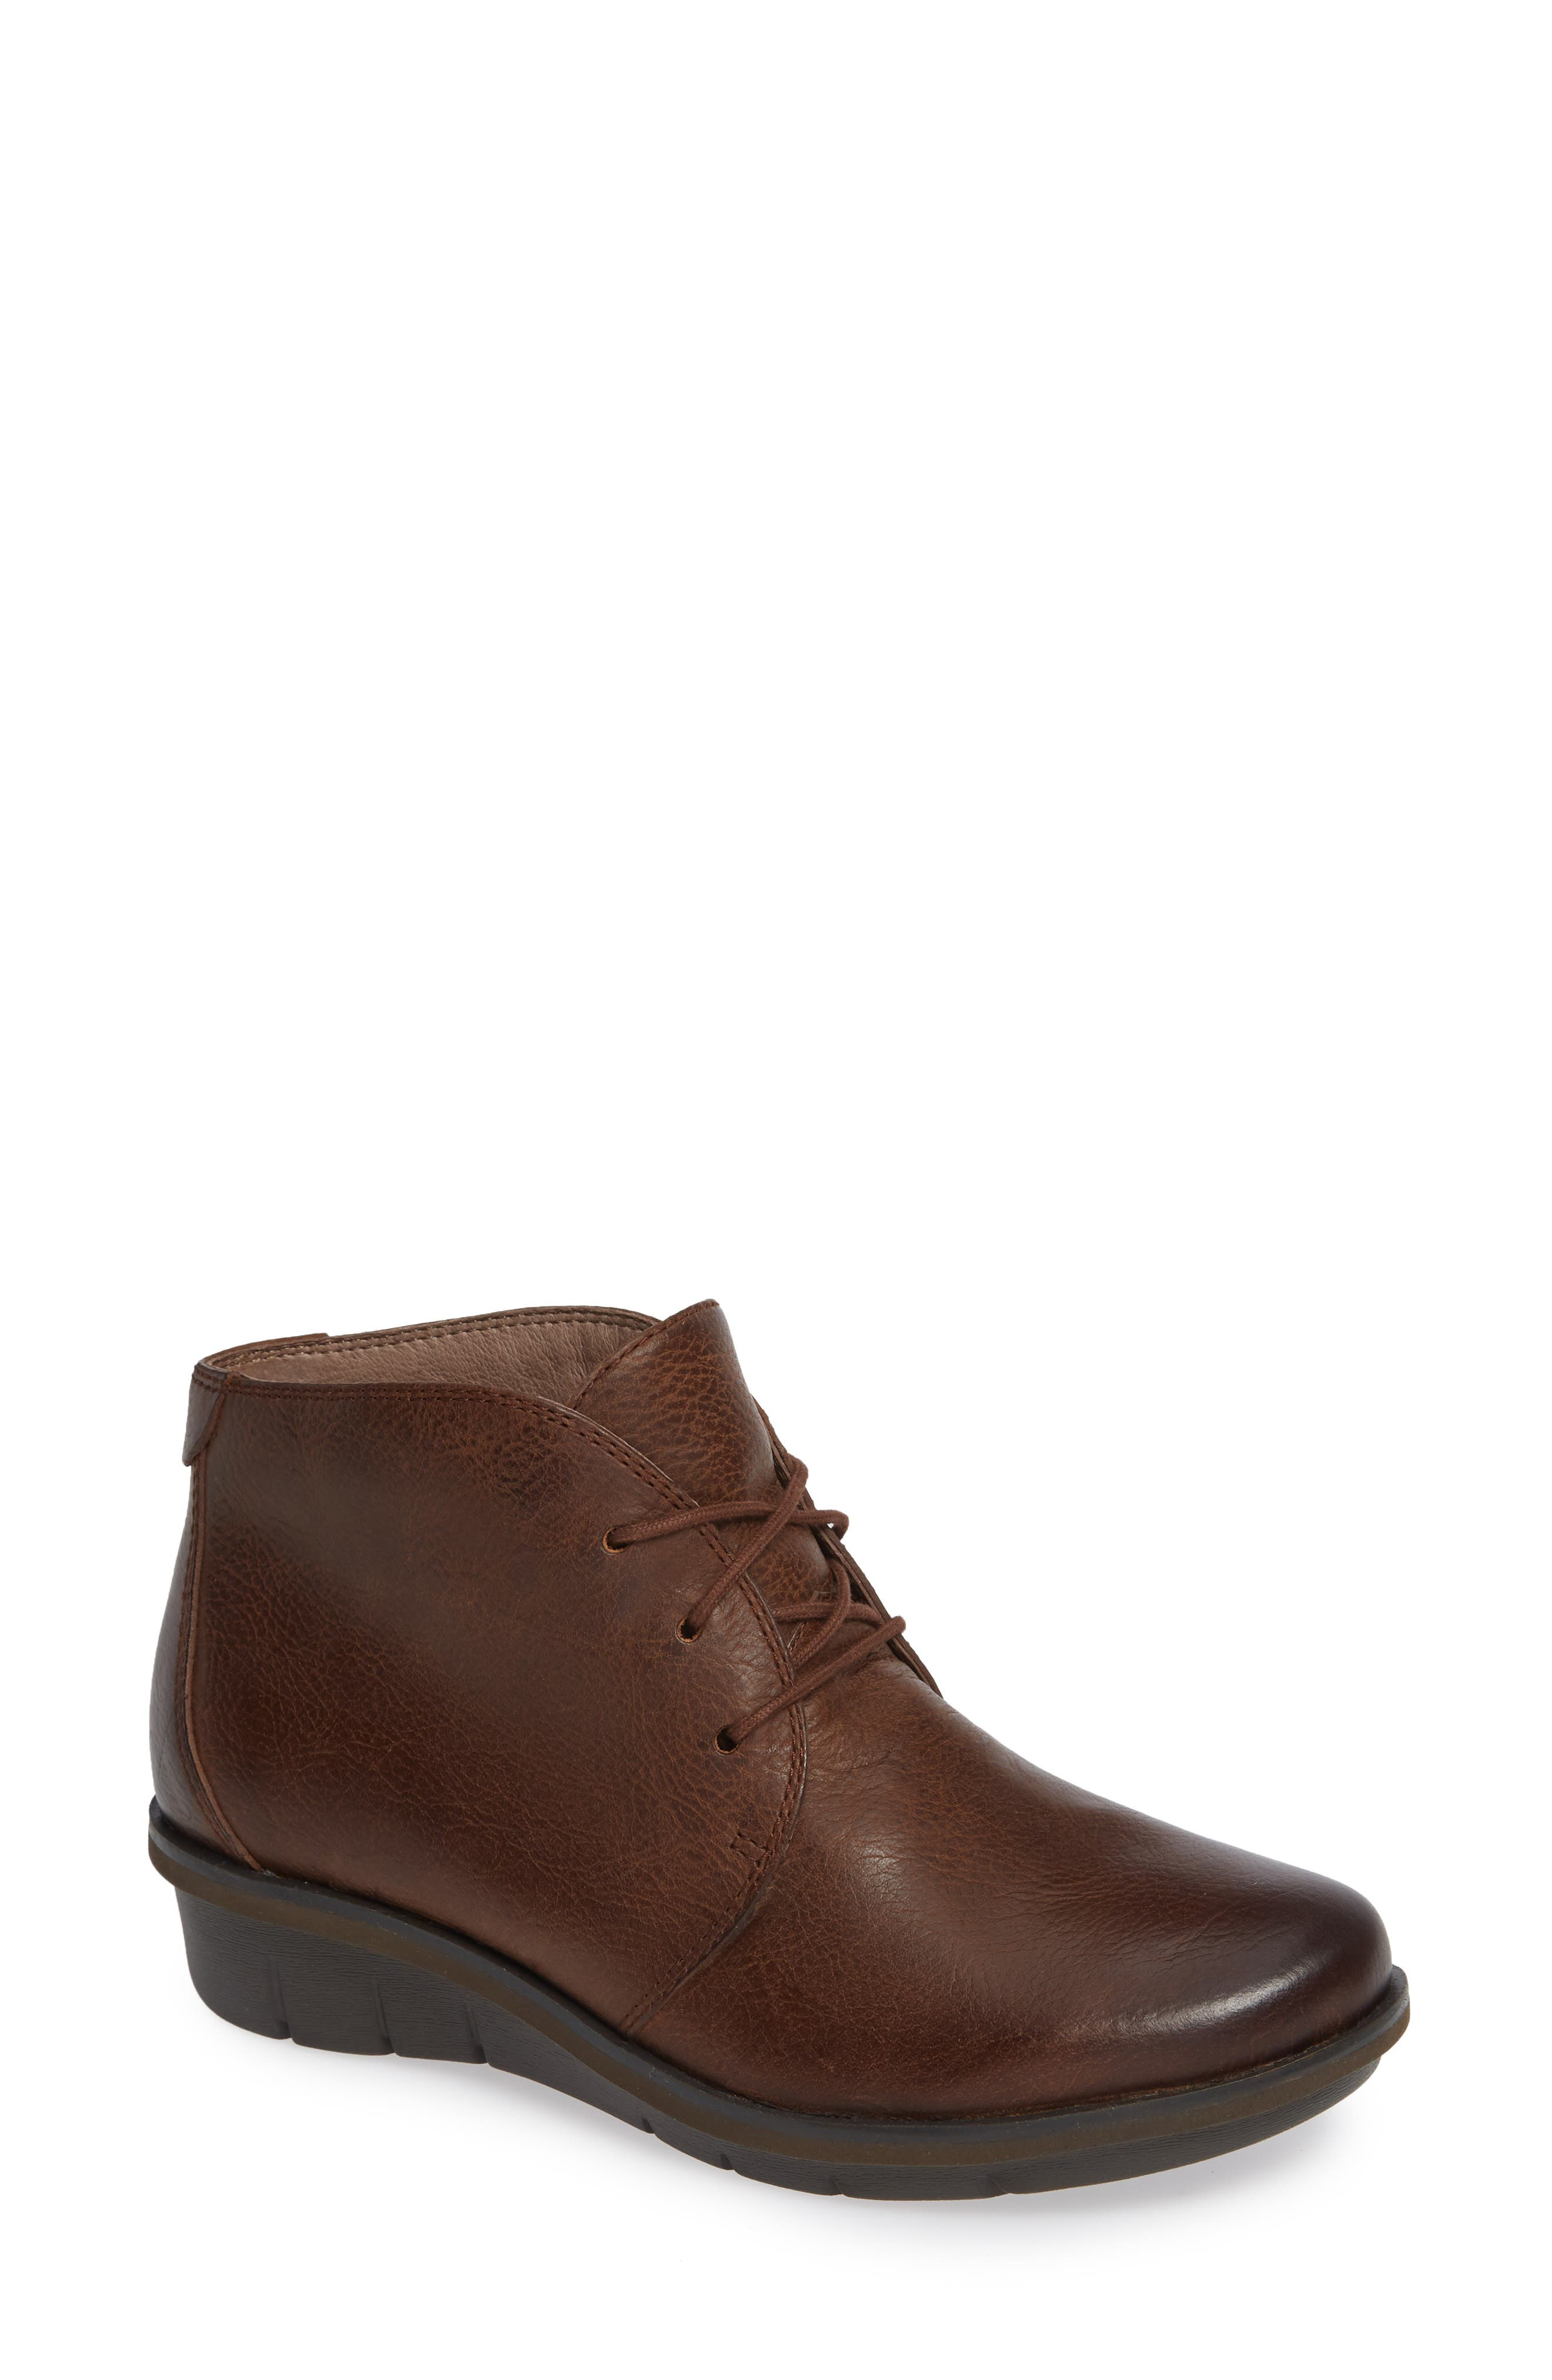 Joy Bootie,                             Main thumbnail 1, color,                             Brown Burnished Nubuck Leather